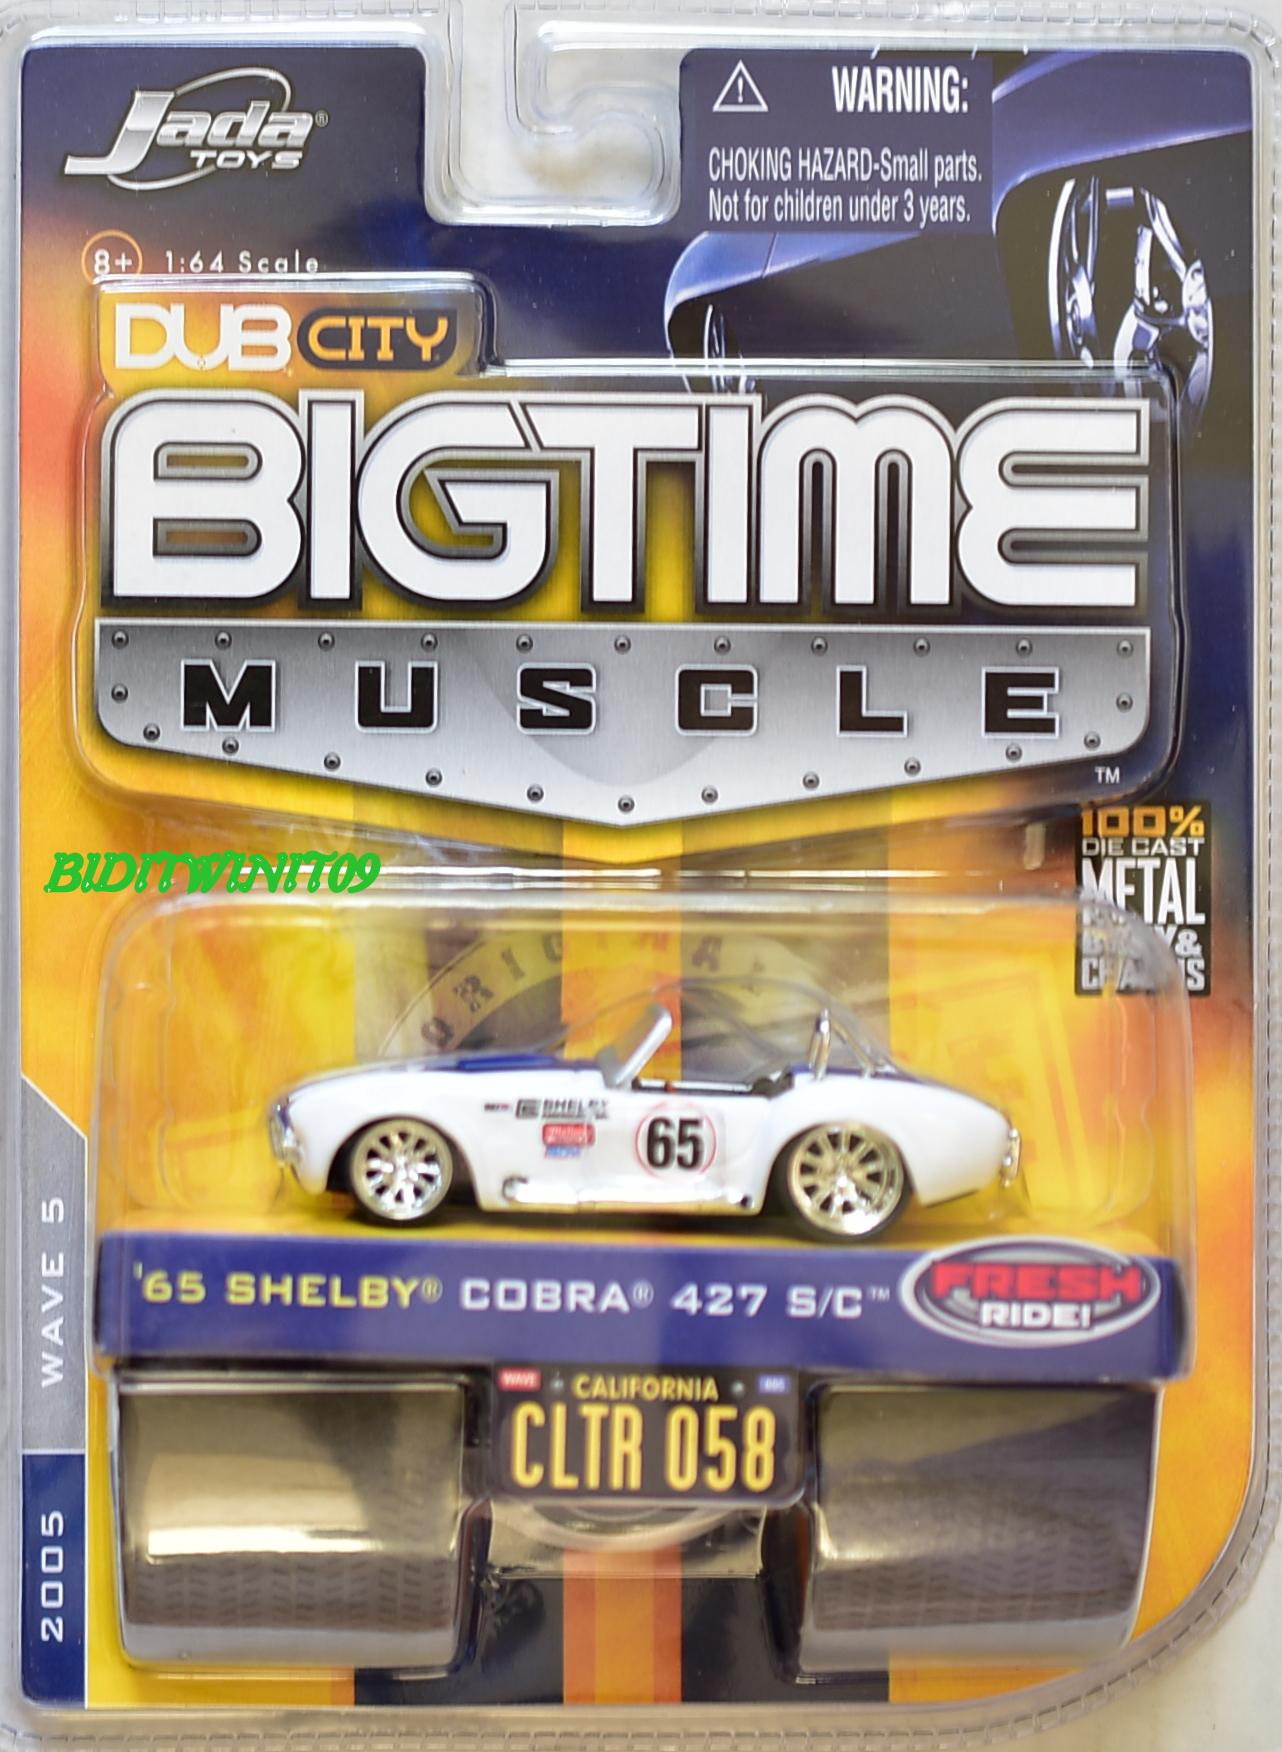 JADA DUB CITY BIGTIME MUSCLE '65 SHELBY COBRA 427 S/C CLTR 058 WHITE E+